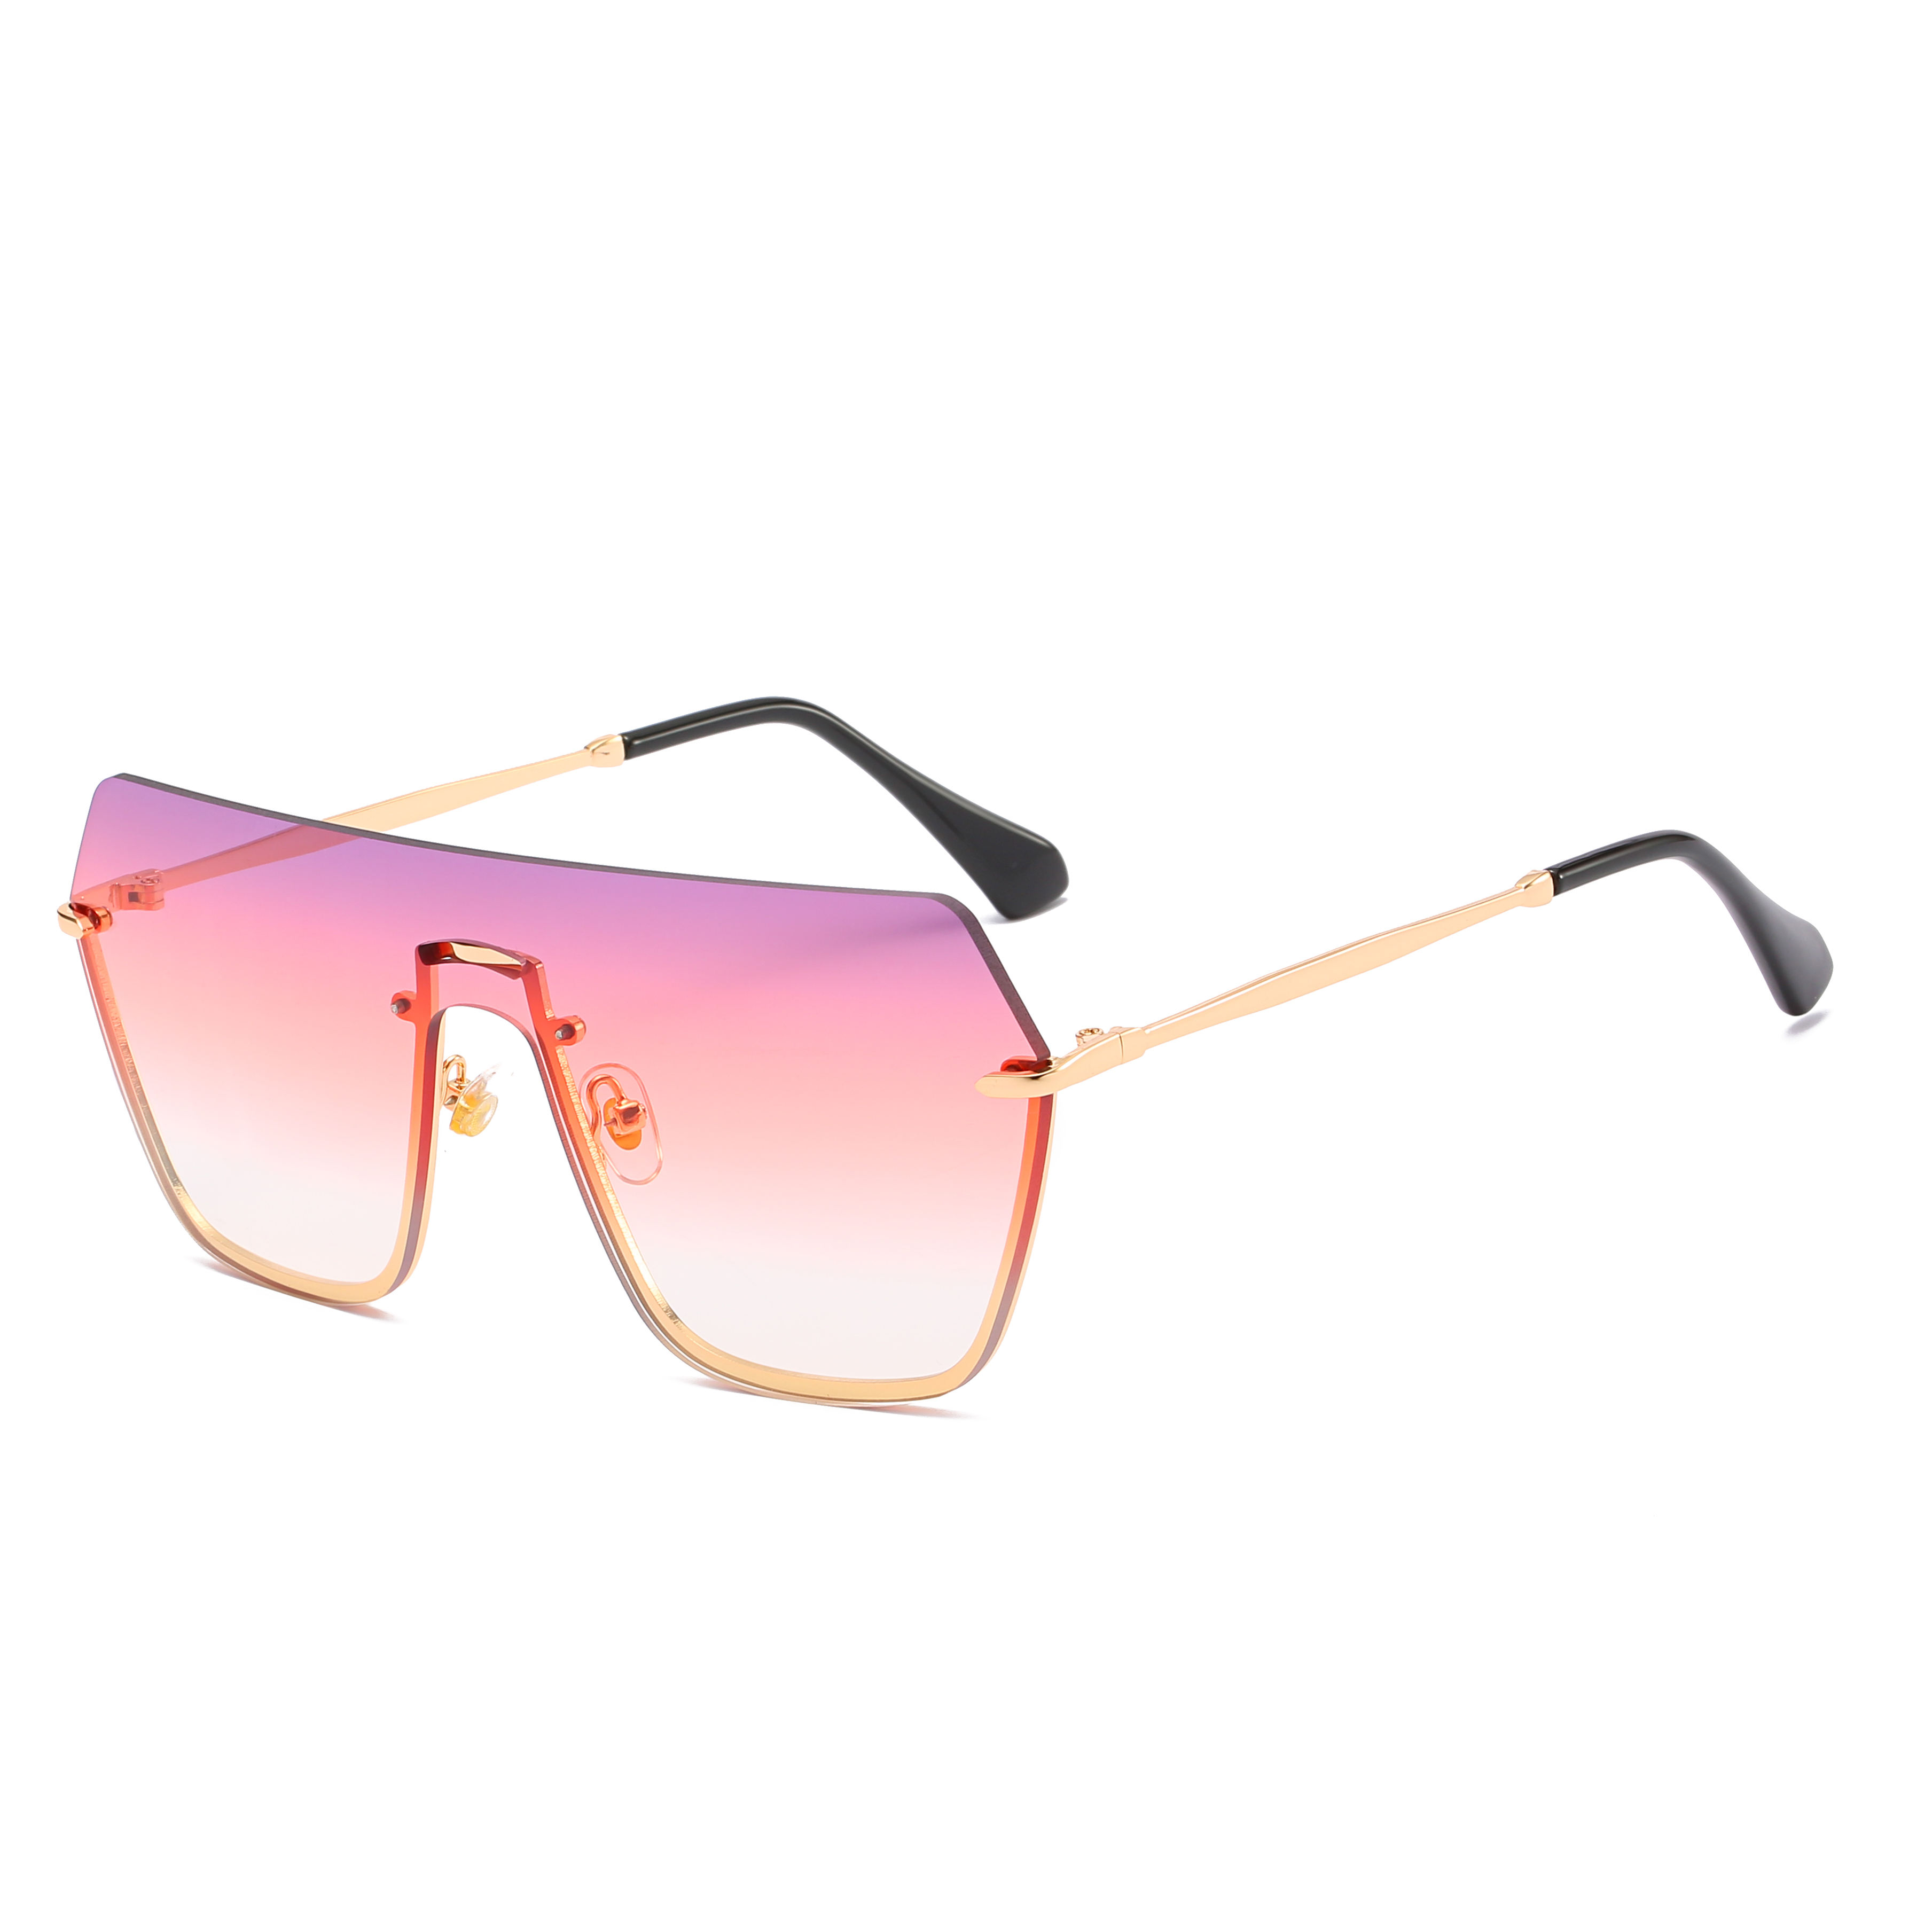 2020 Brand Designer Fashion Oversized Square Sunglasses Sun Glasses